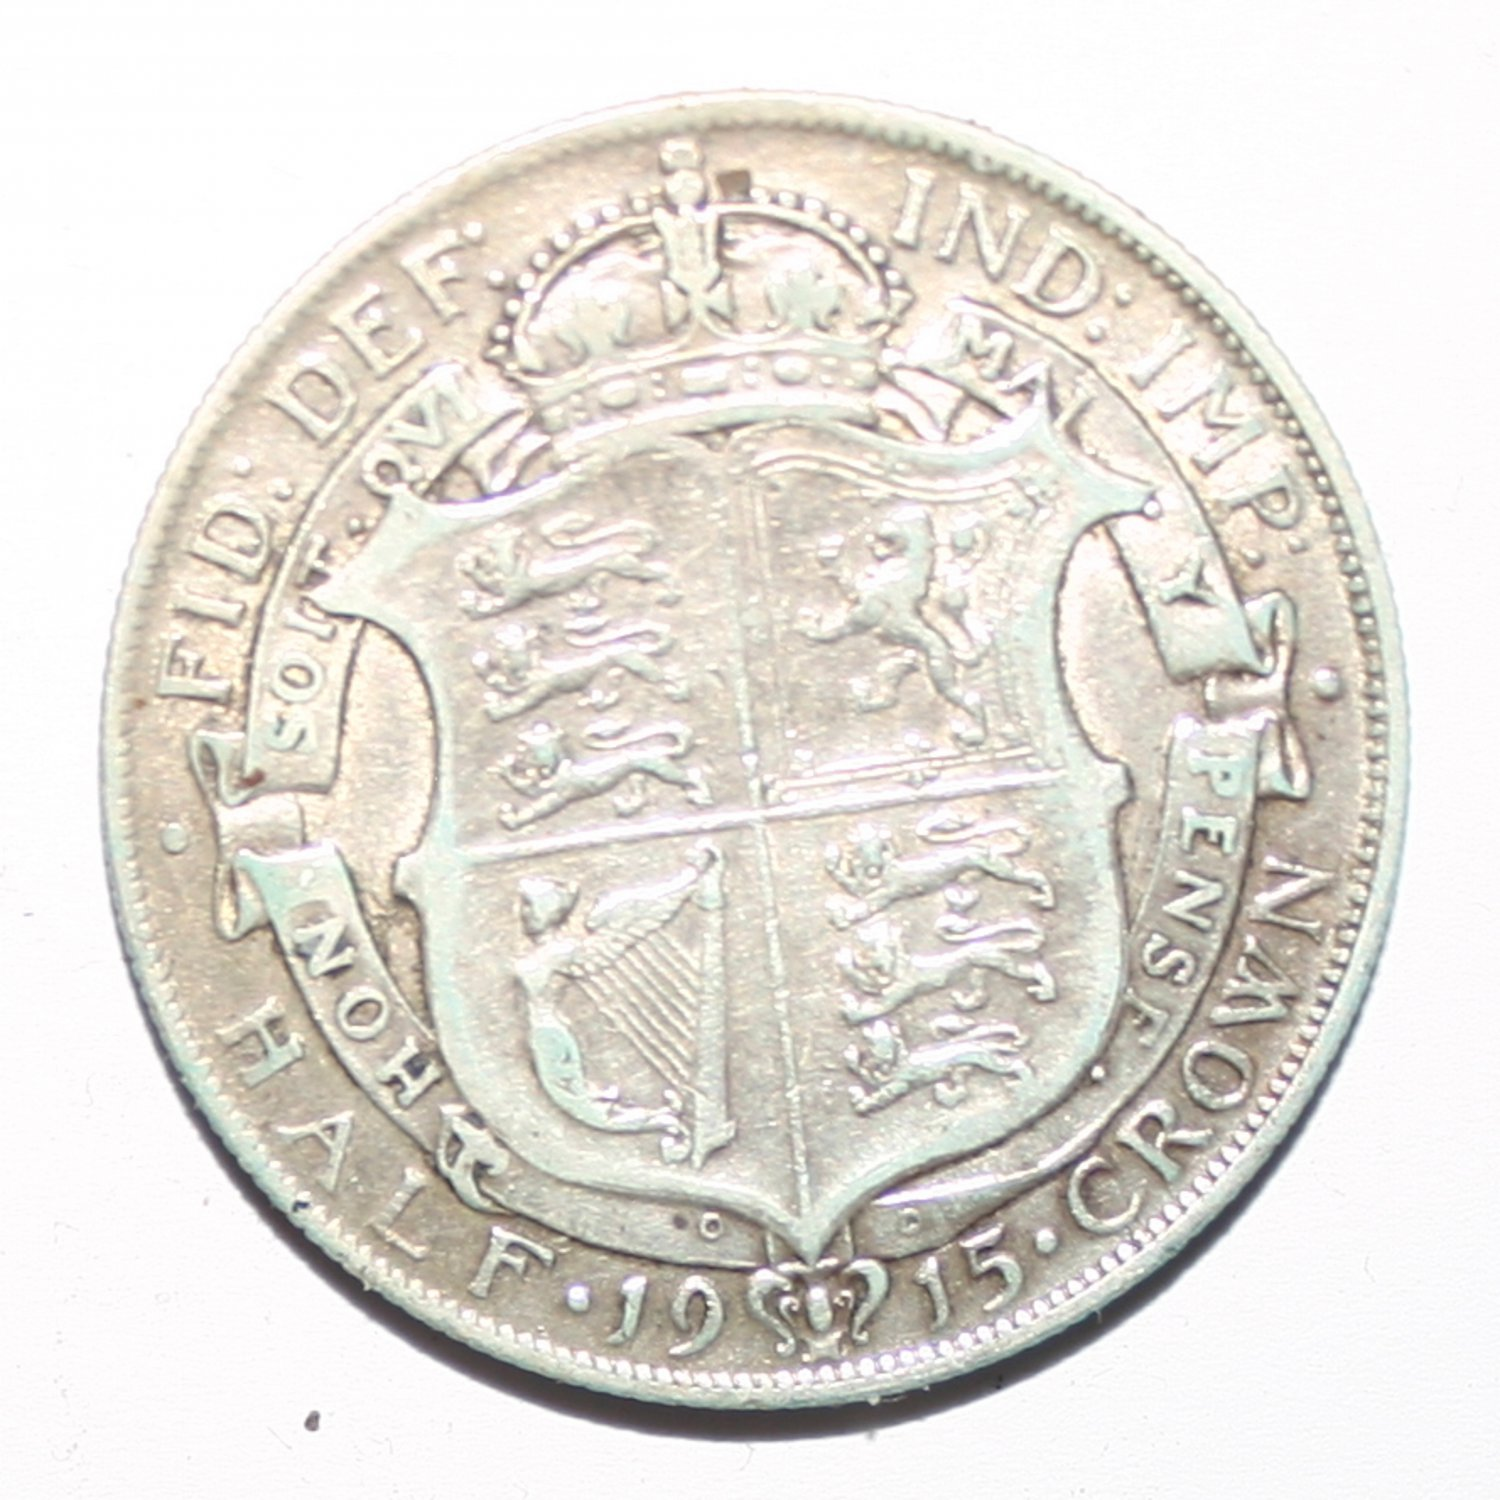 King George VI Silver Half Crown 1915 Coin